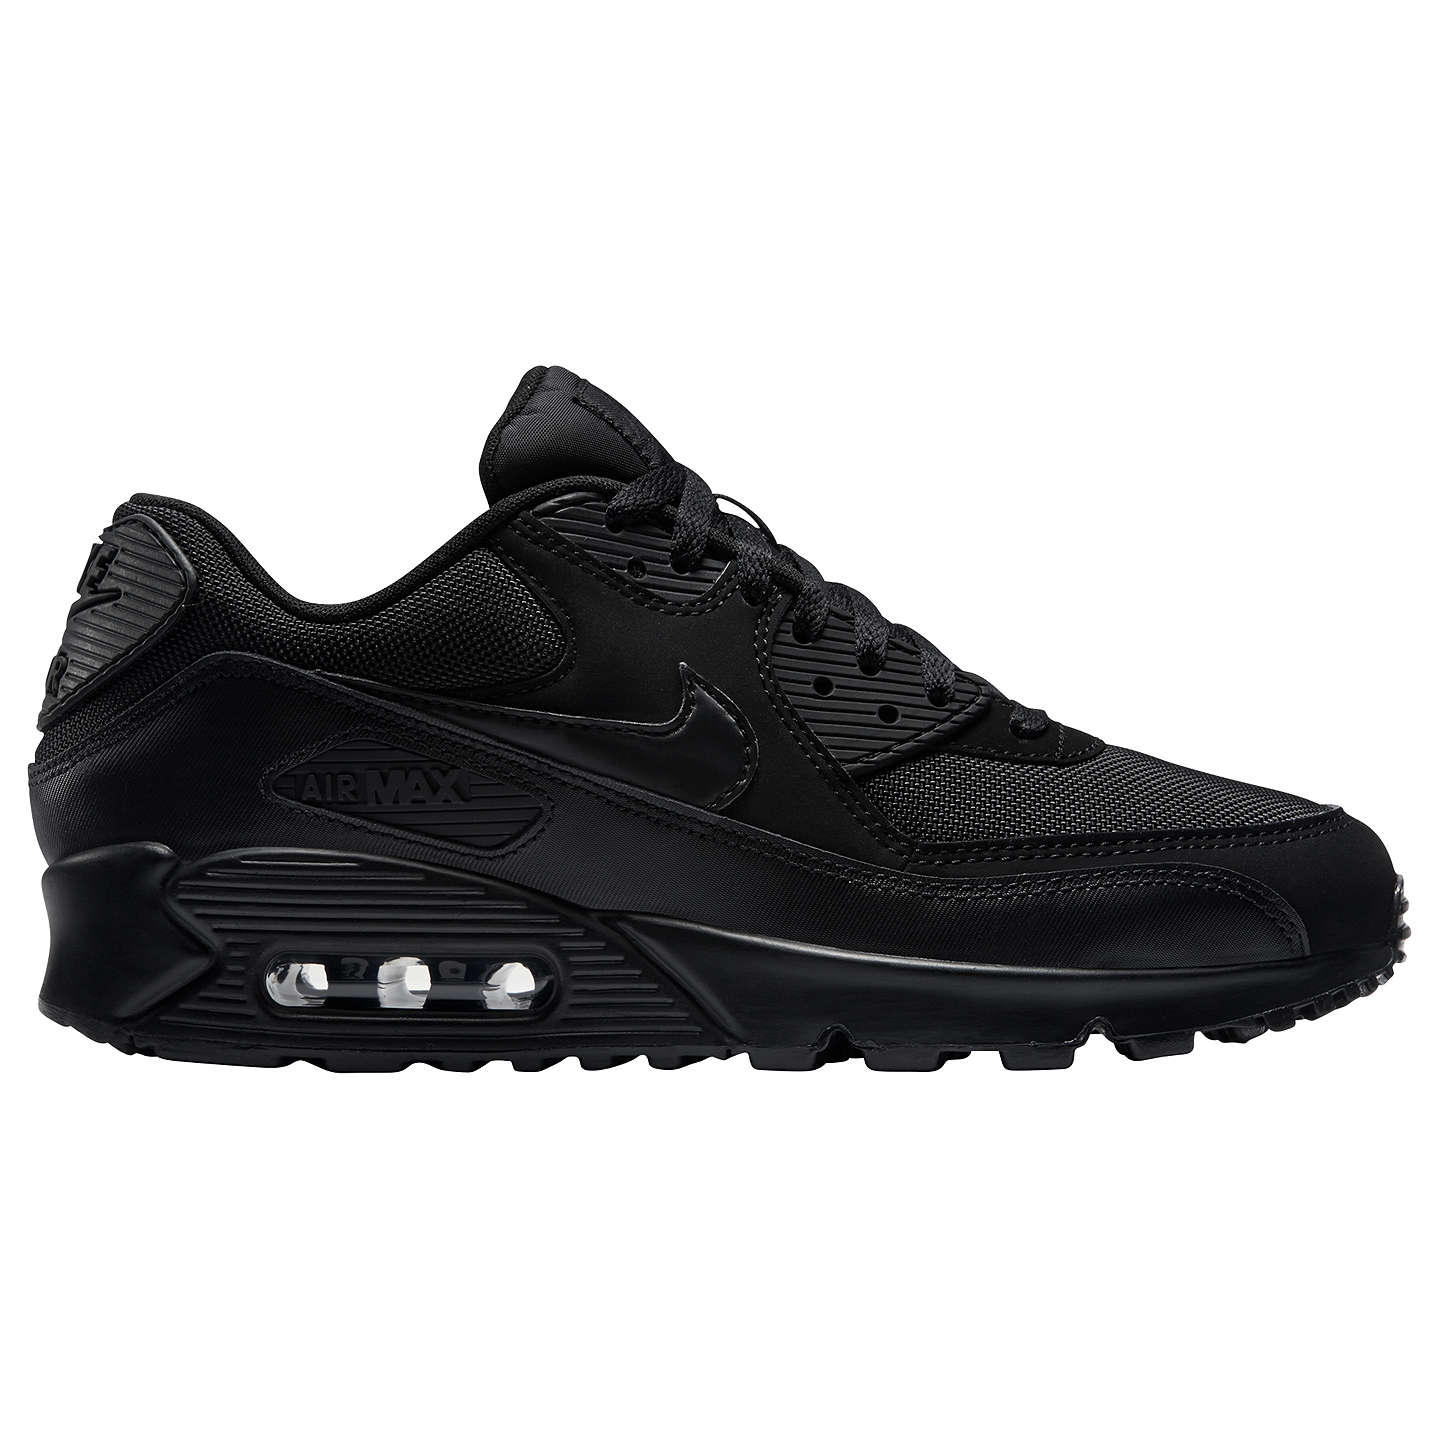 nike air max 90 black and white price philippines rechargeable fans